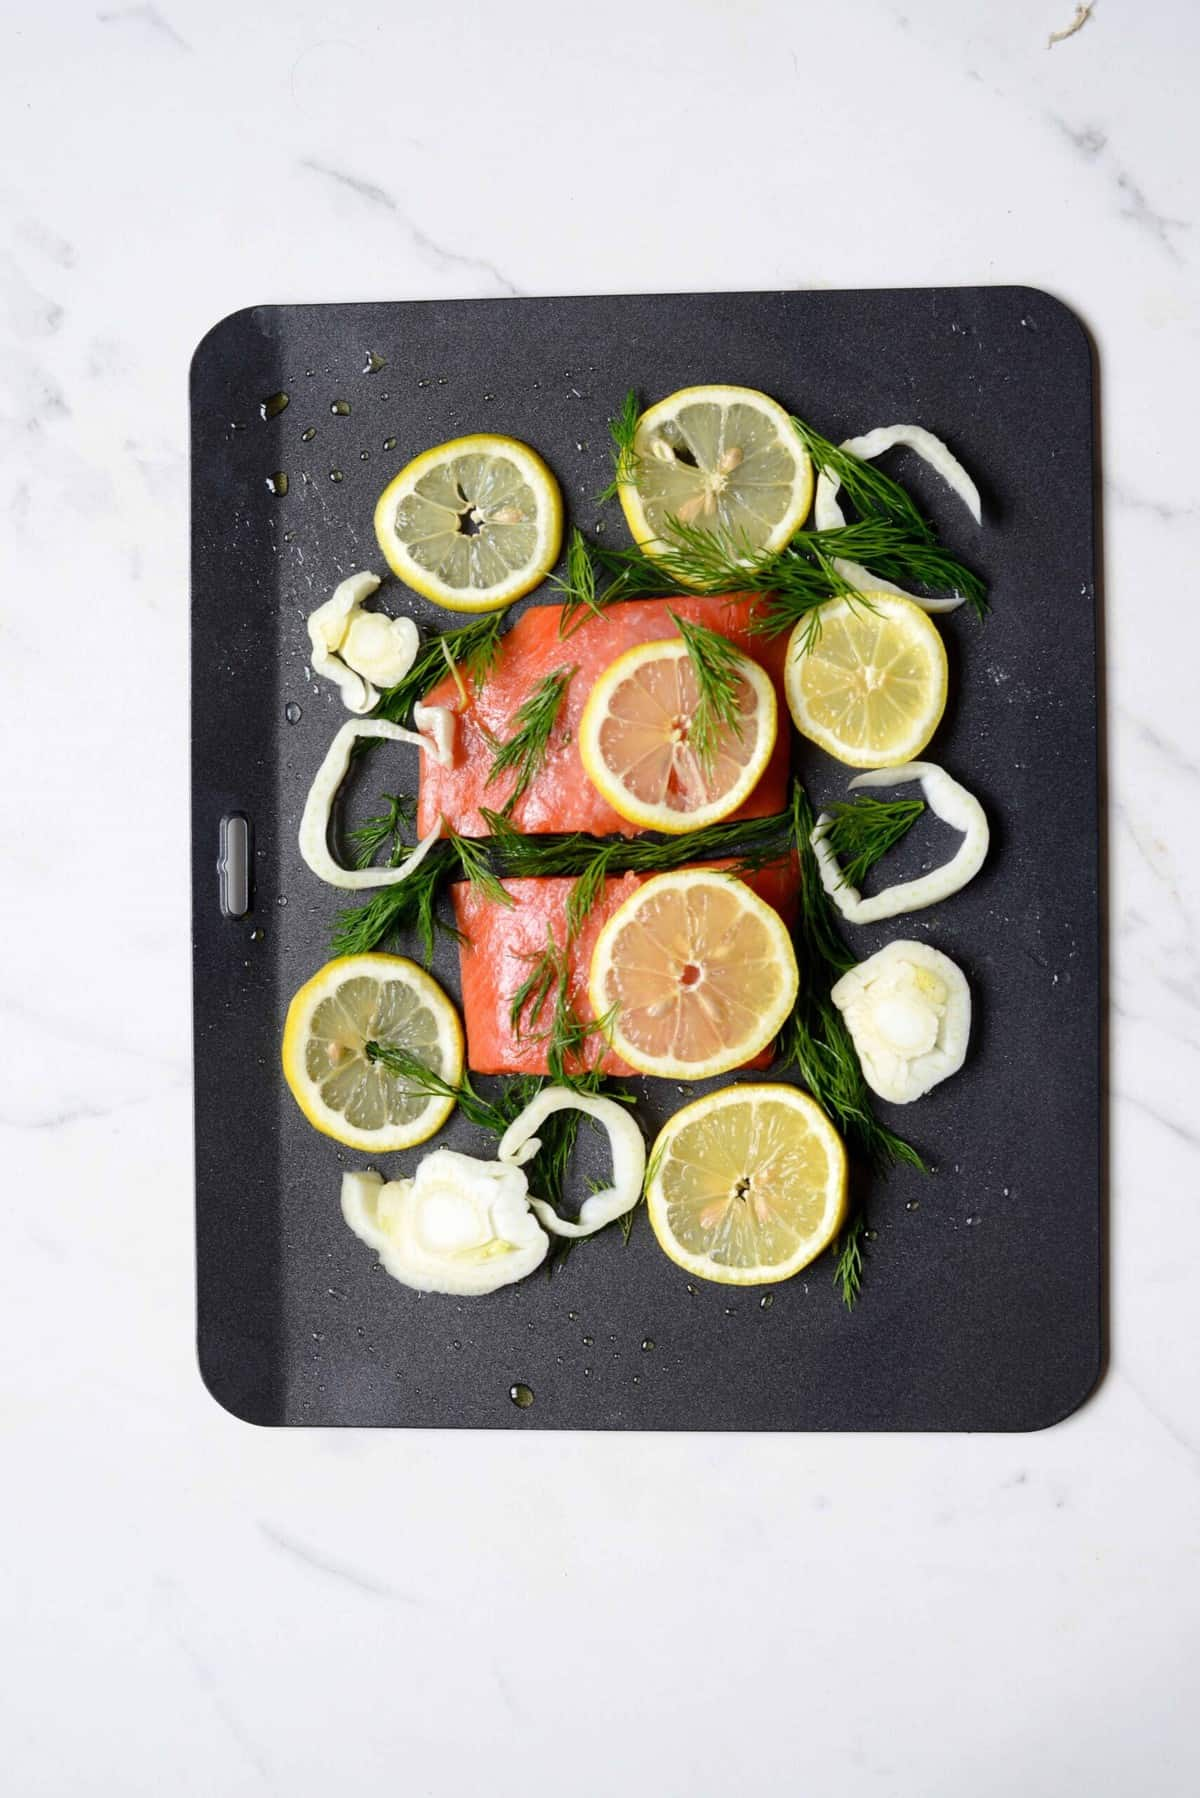 Salmon and lemon slices on a baking tray